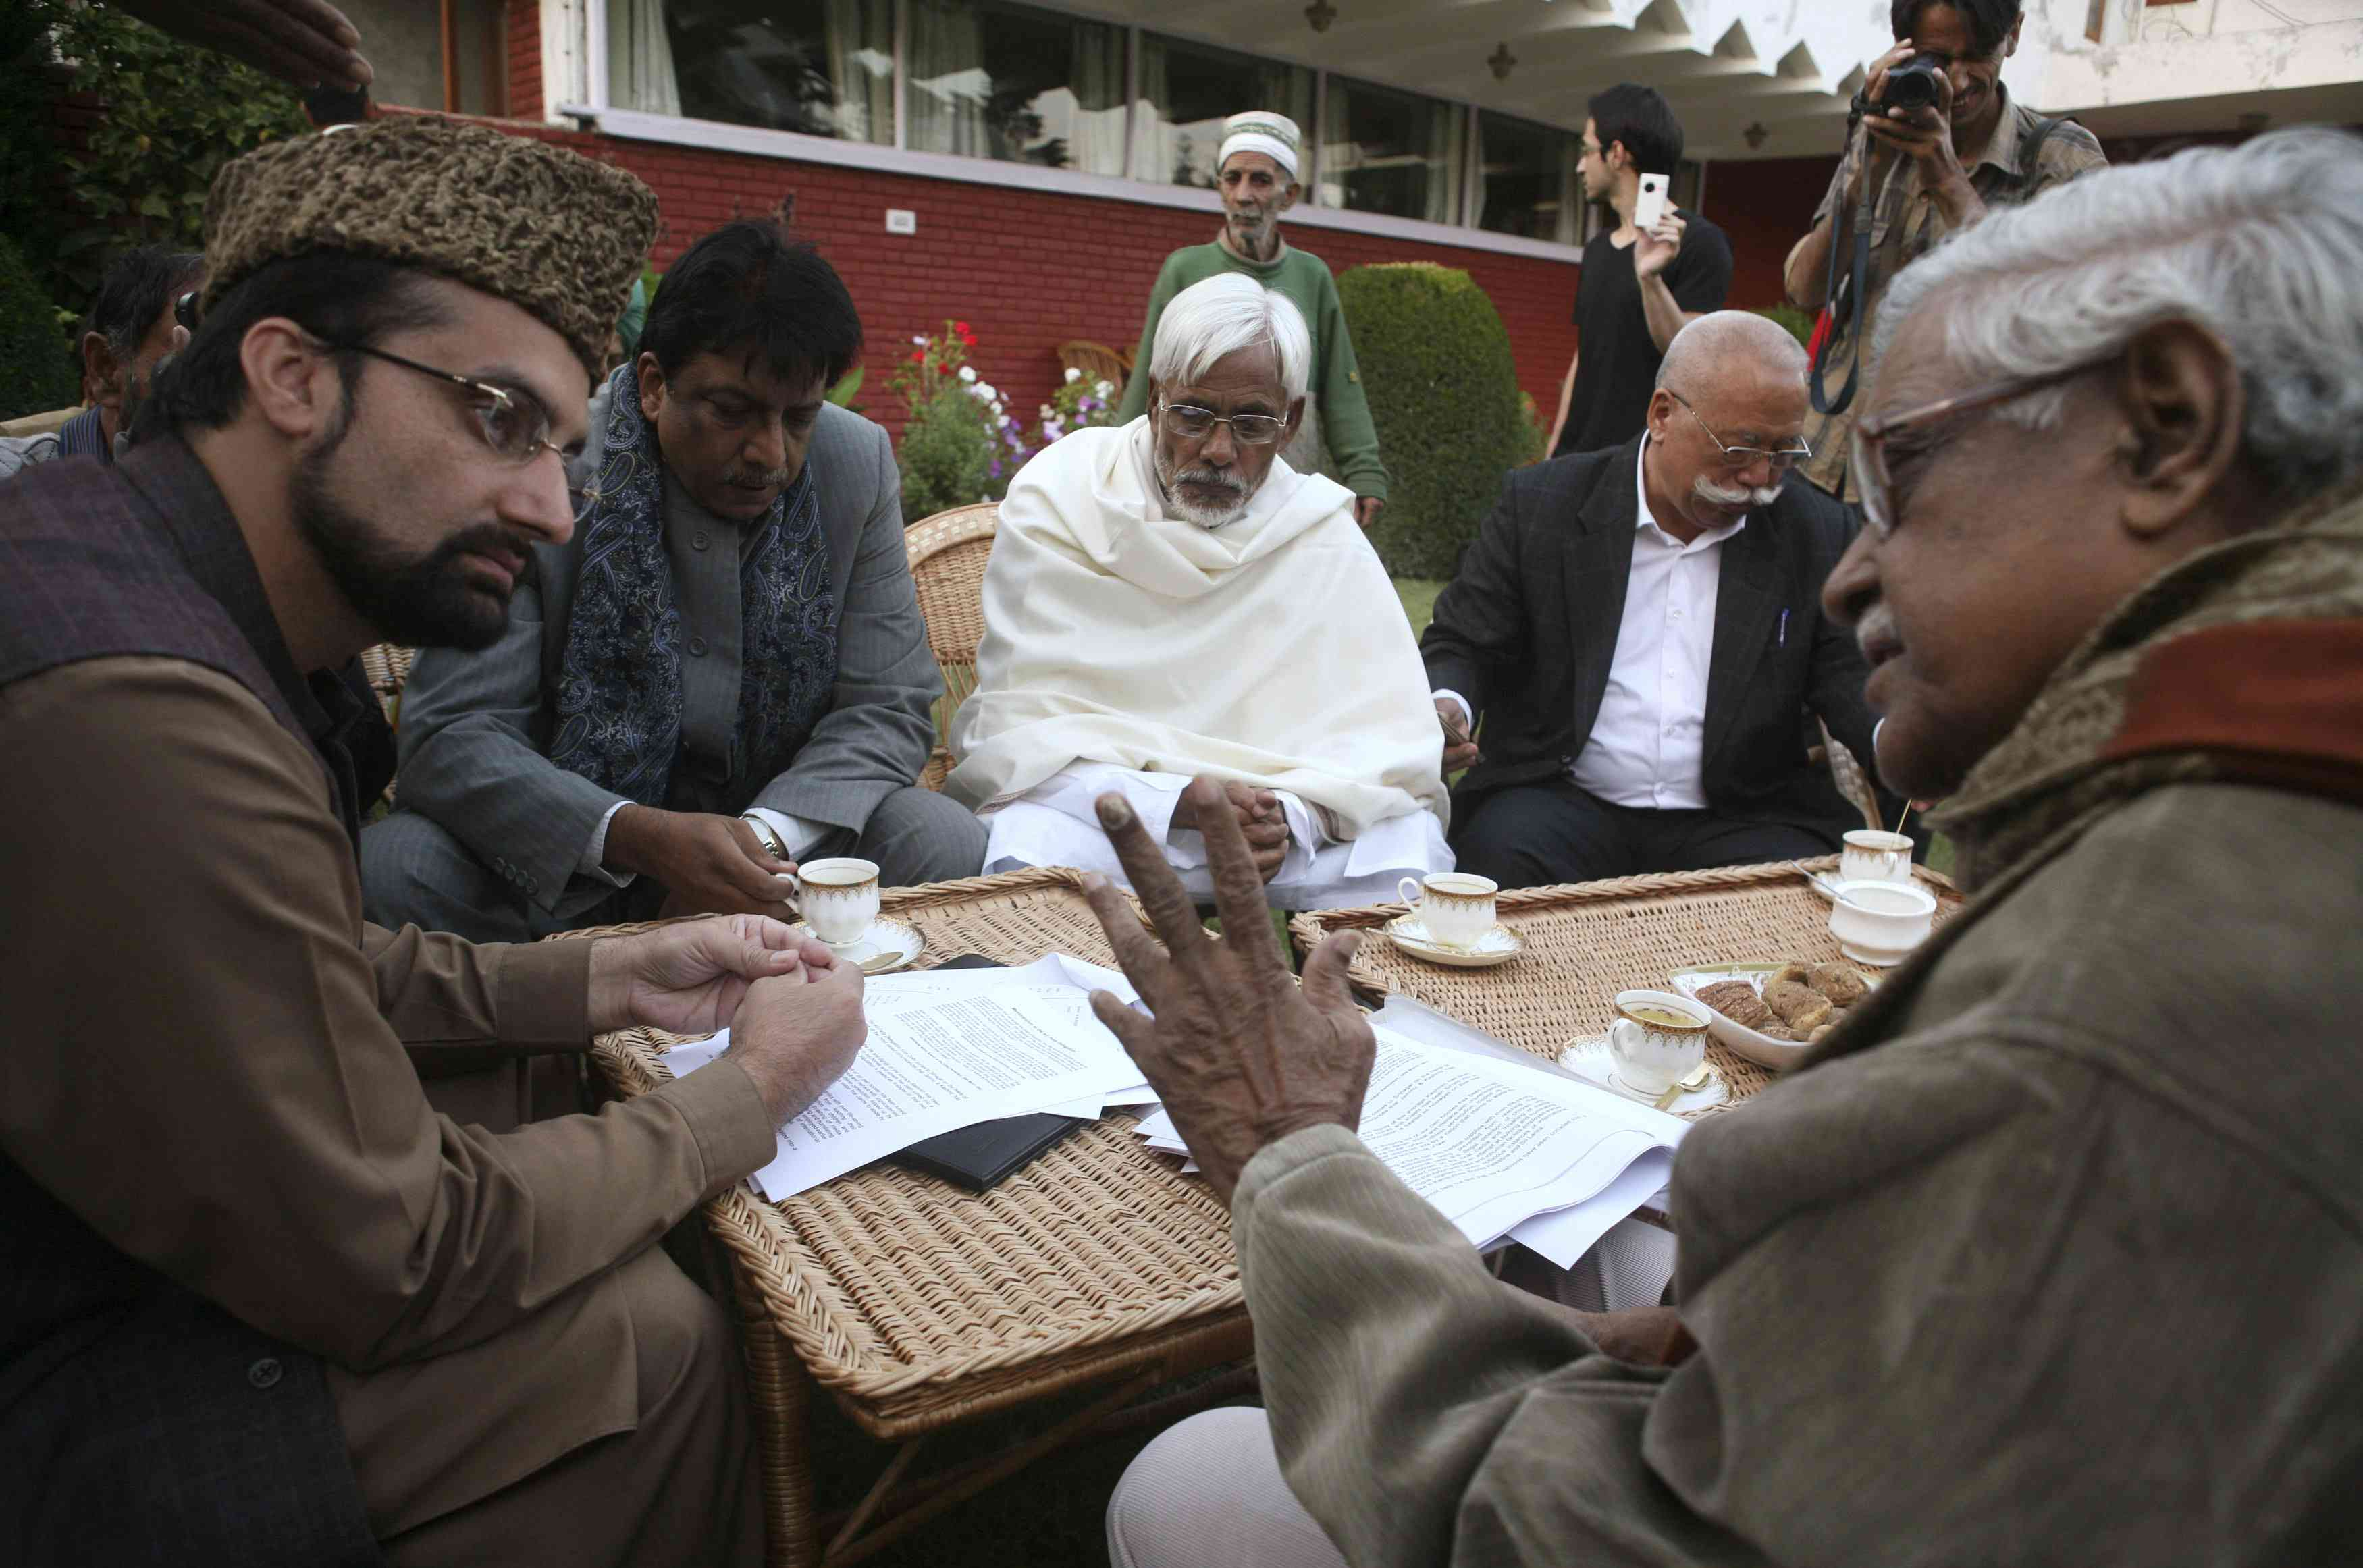 Mirwaiz Omar Farooq meets a delegation of Indian politicians led by the communist leader Gurudas Dasgupta, right. Photo credit: Reuters